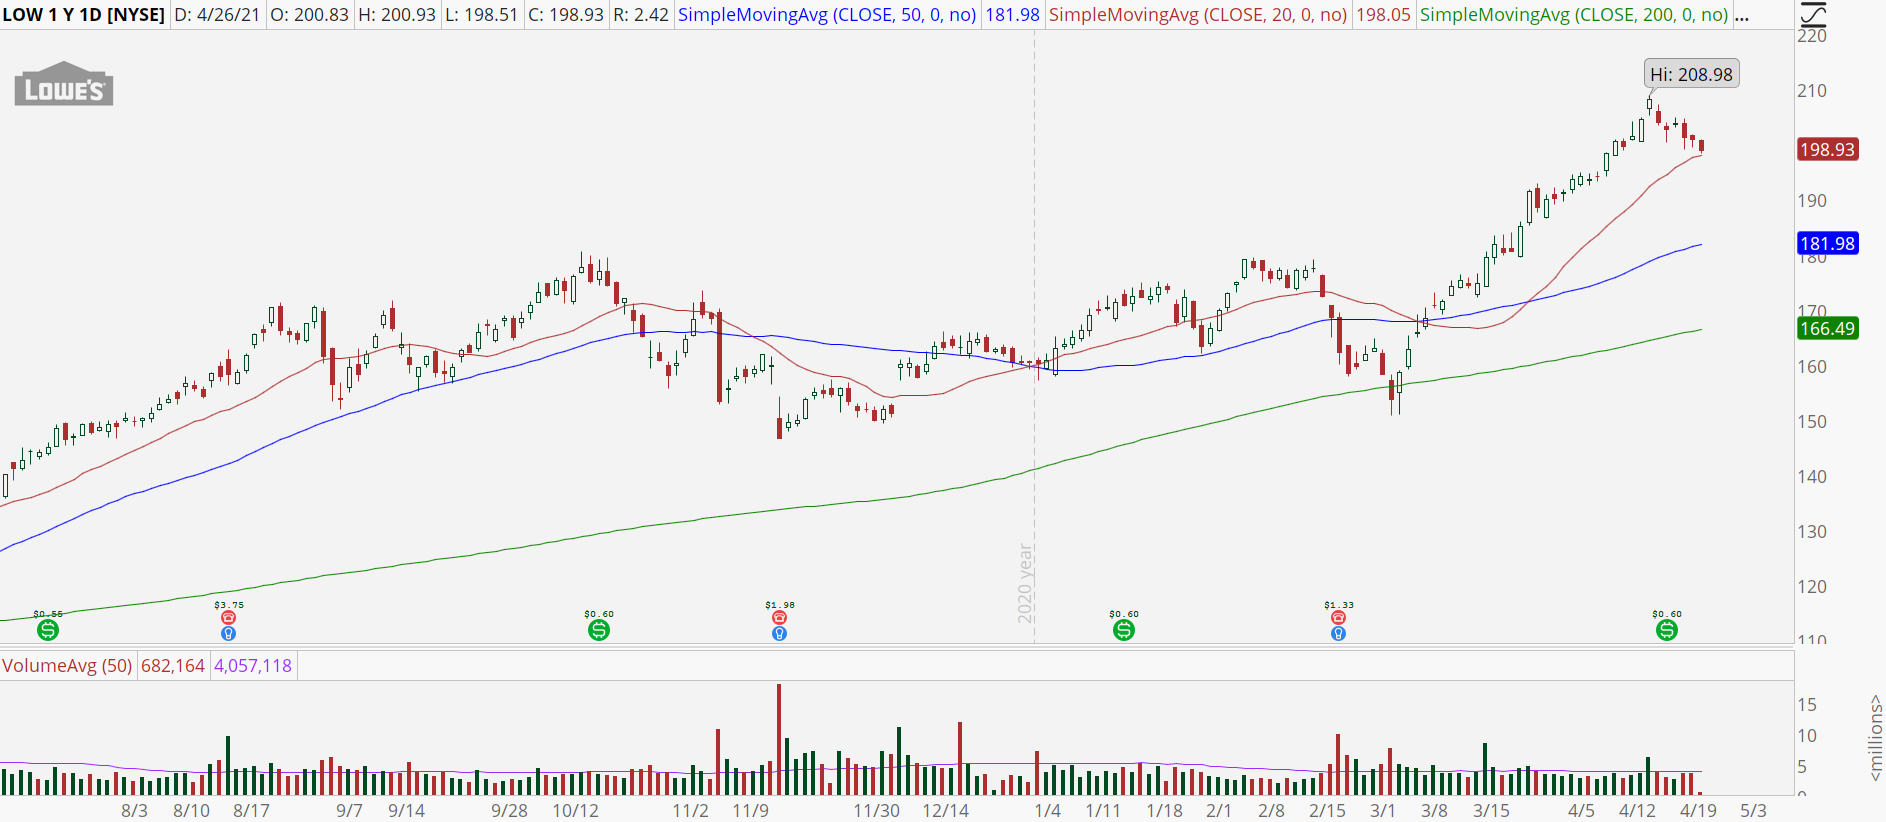 Lowes (LOW) stock with bull retracement pattern.